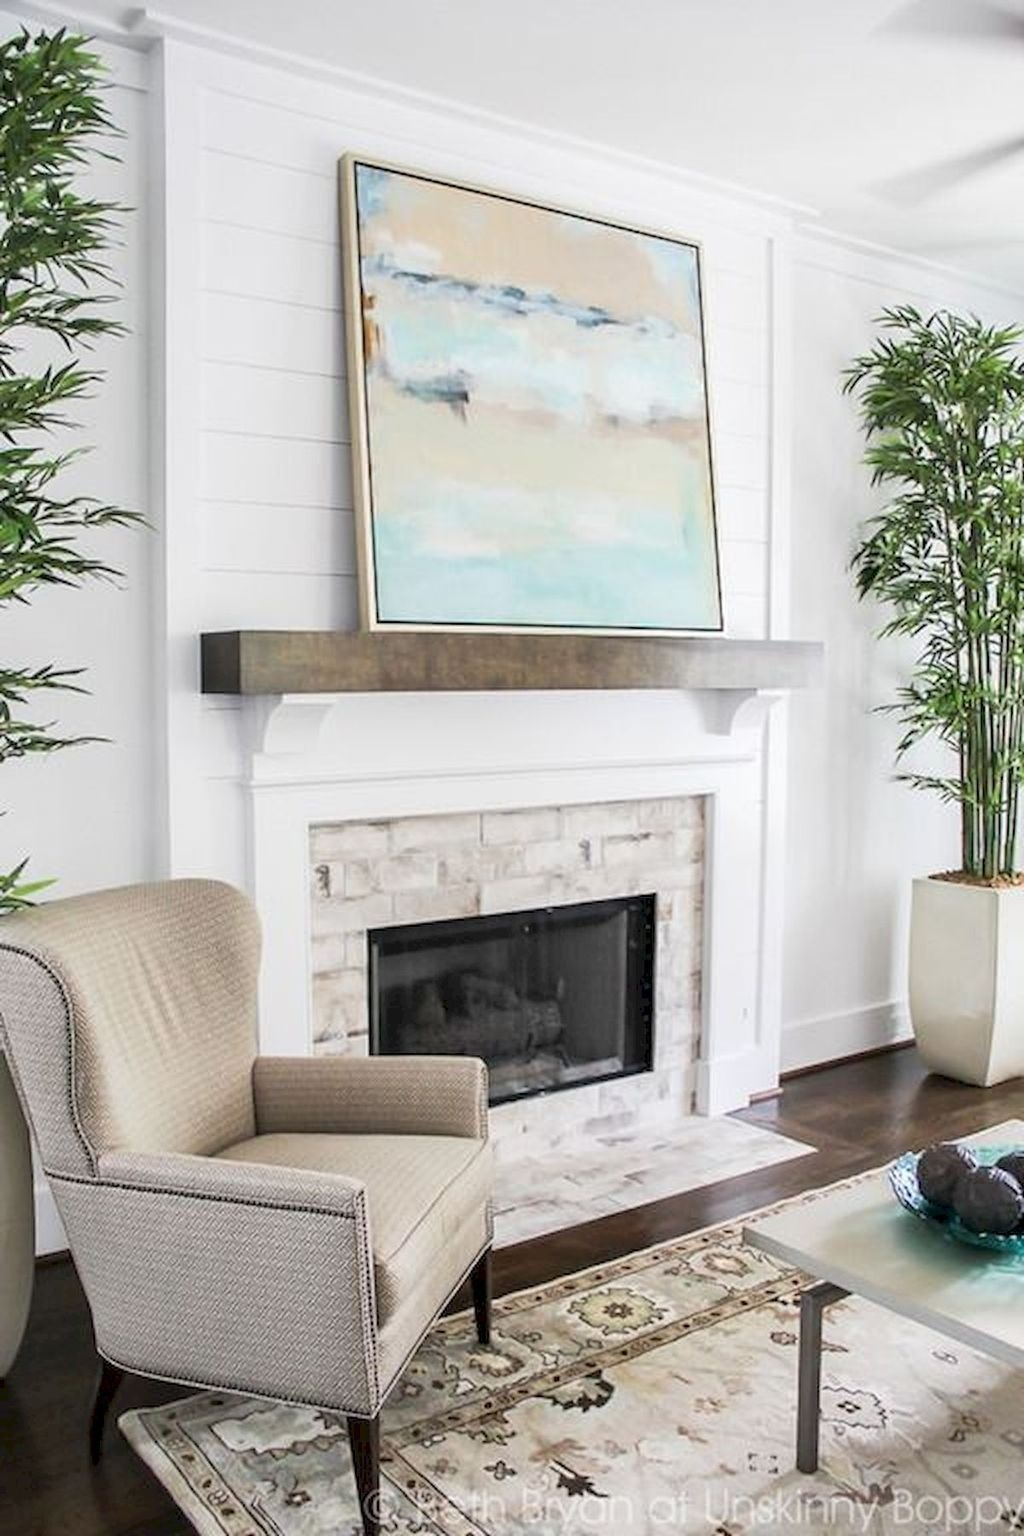 Modern Brick Fireplace Decorations Ideas For Living Room35